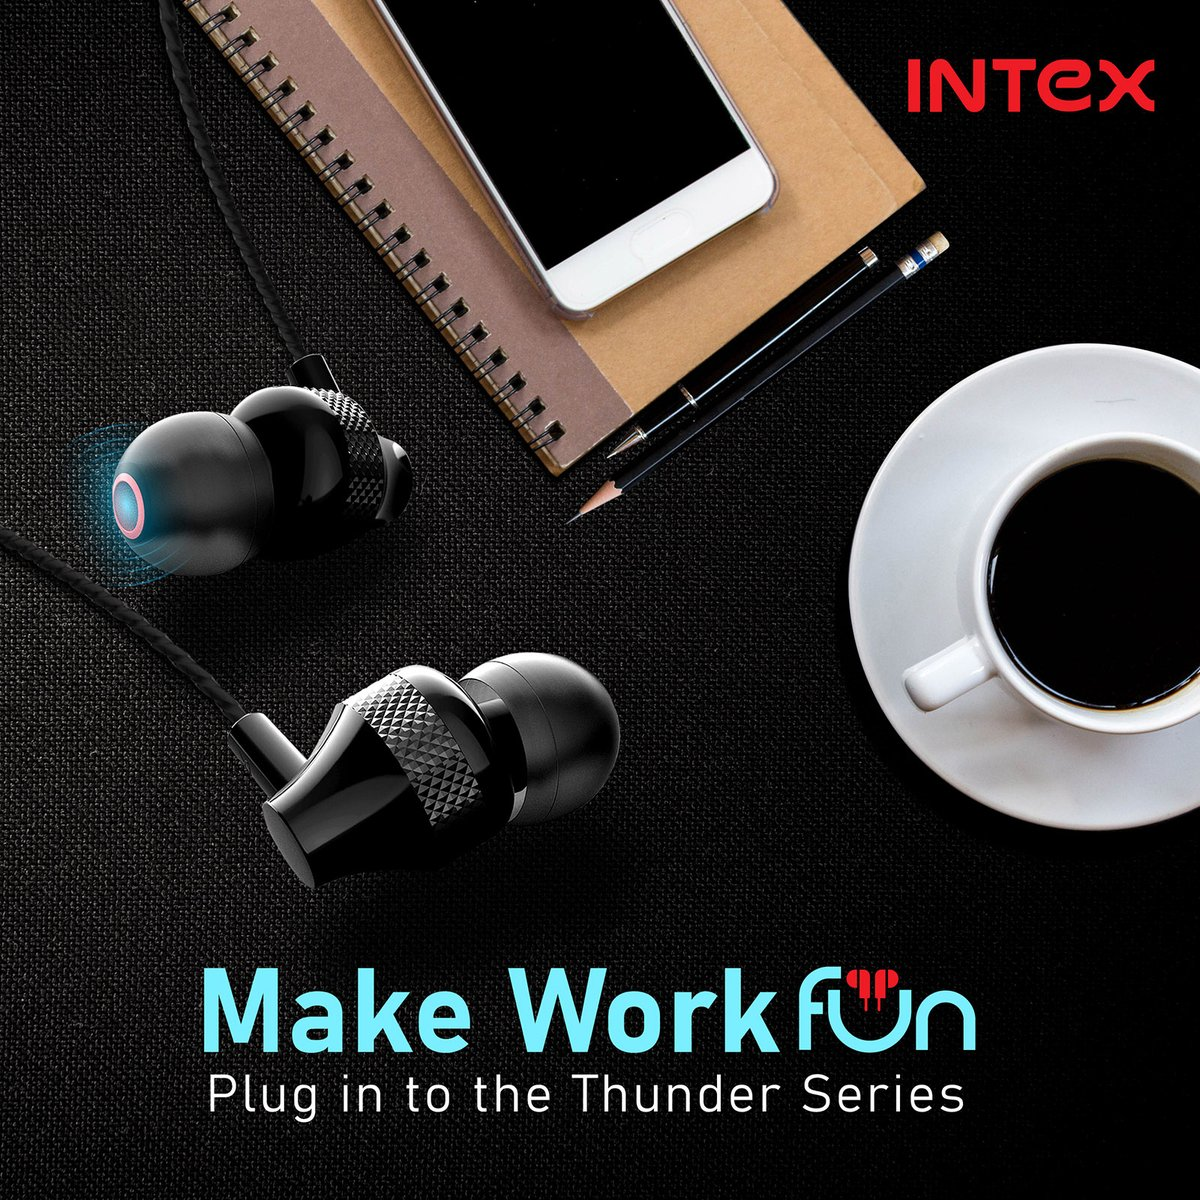 #WorkBlues rushing in? Plug in the Intex #ThunderSeries and transform your work-style!  Know more: http://www.intex.in   #IntexTechnologies #TechNews #technology #technologynews #technologyofindia #Lifestyle #TrendUpdates #LatestInTech #NewLaunchpic.twitter.com/q7MdIzldVF